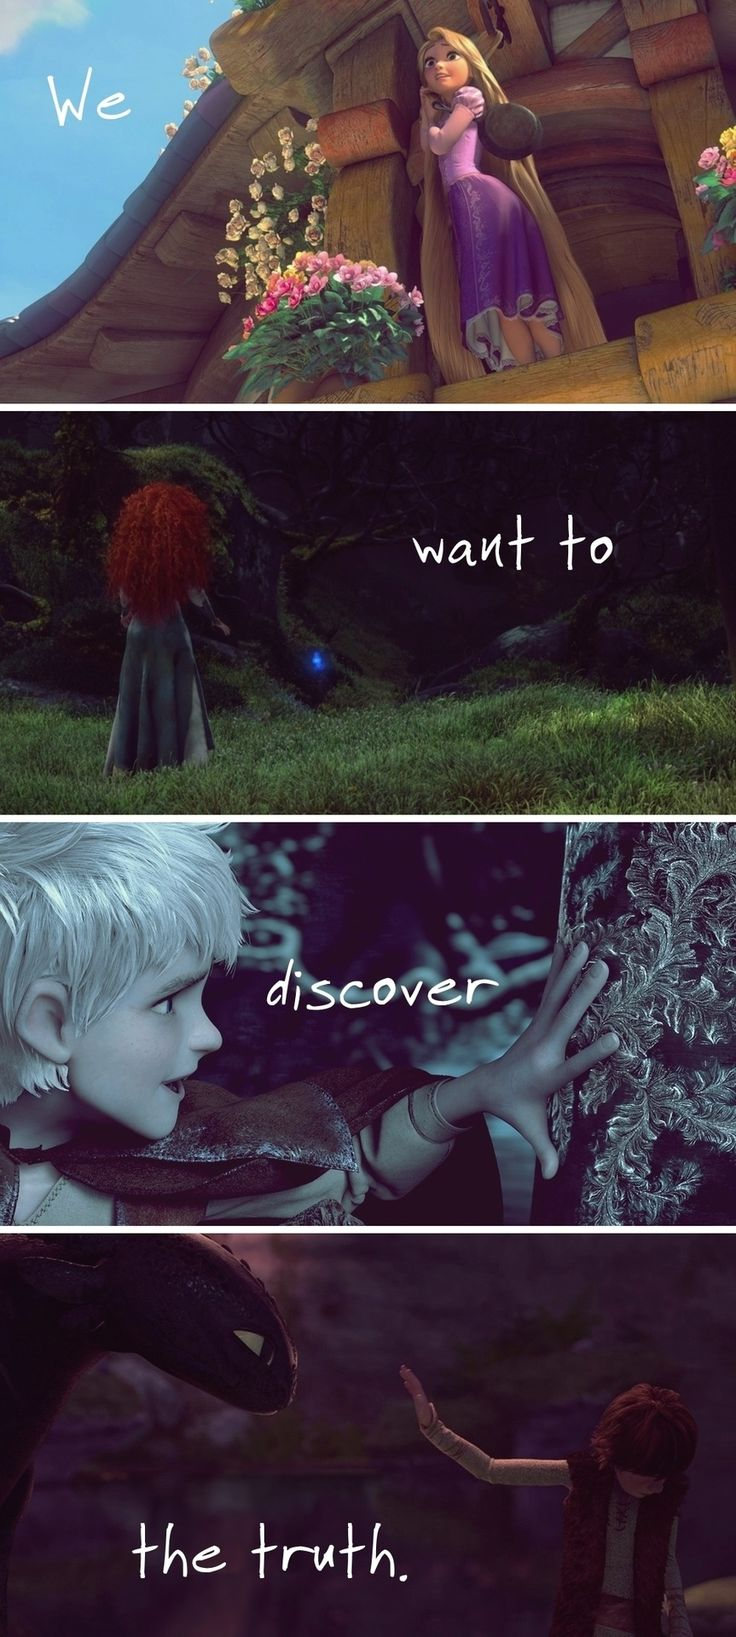 jack frost hiccup merida | Jack, Merida, Hiccup and Rapunzel - Found this cute